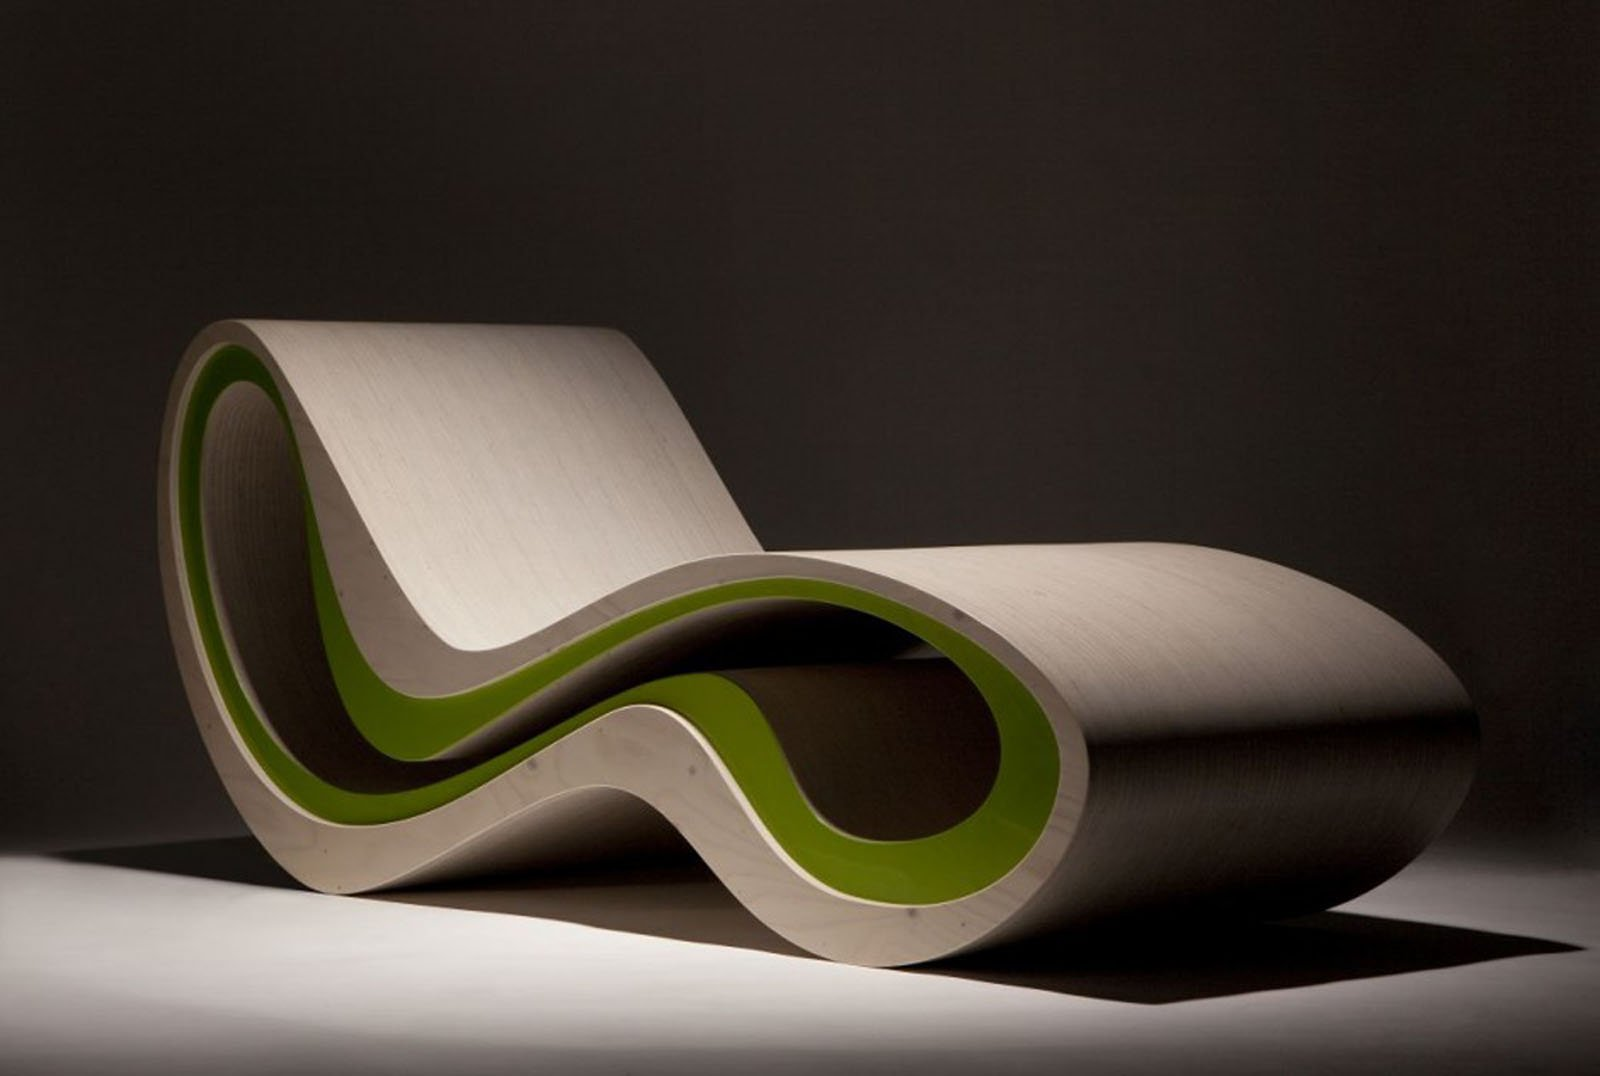 Modern design furniture - Modern Design Furniture